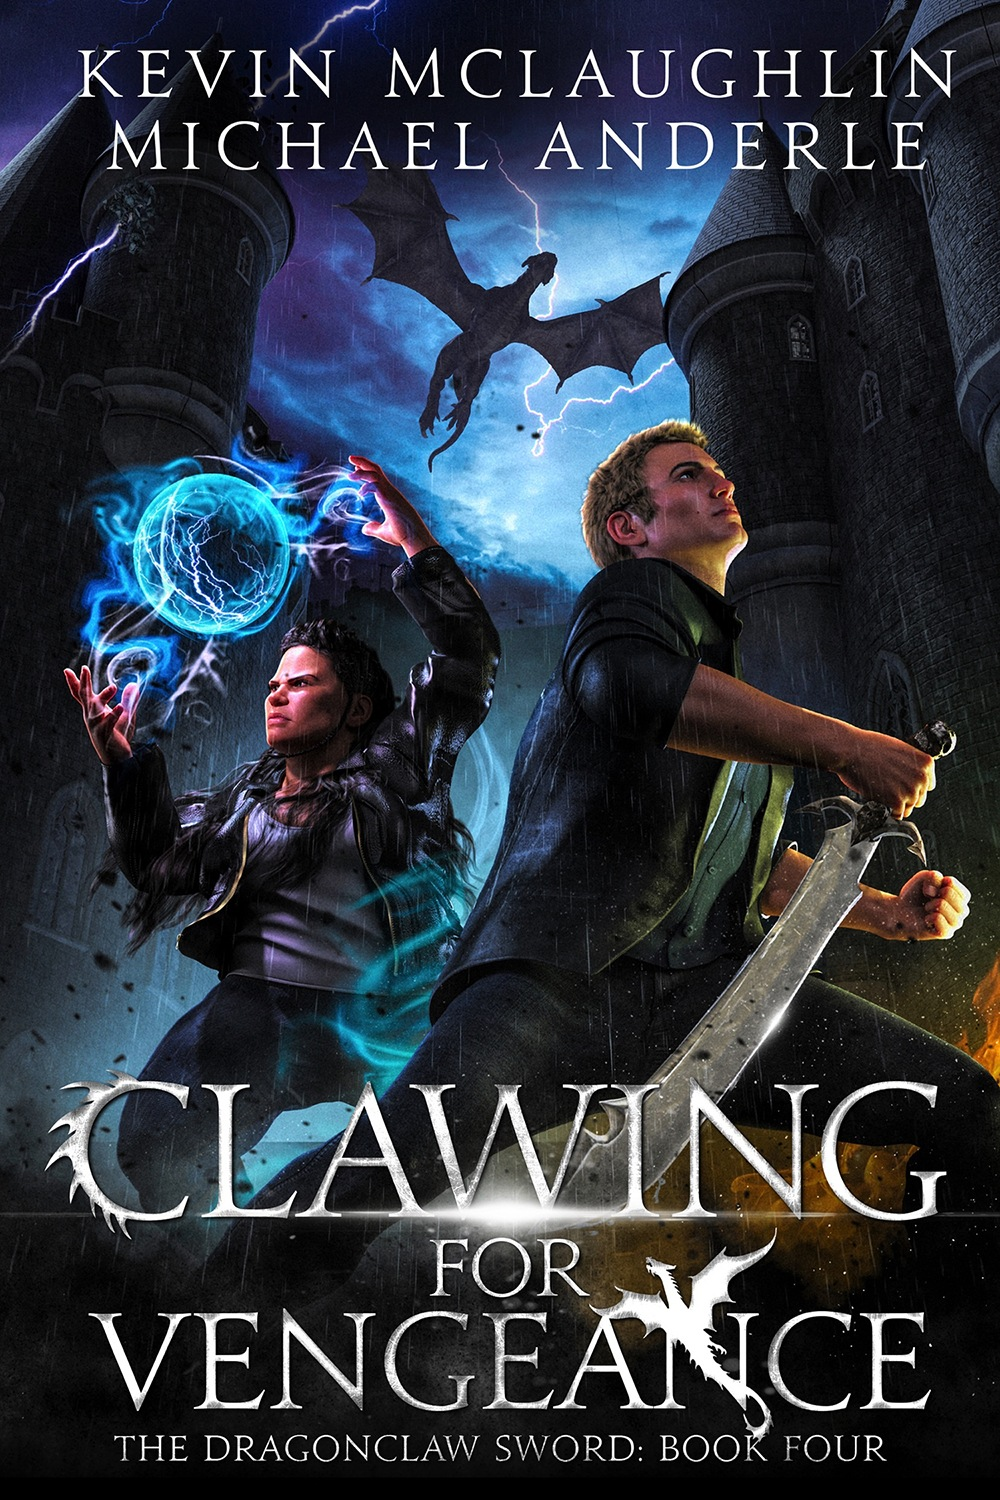 Clawing For Vengeance e-book cover